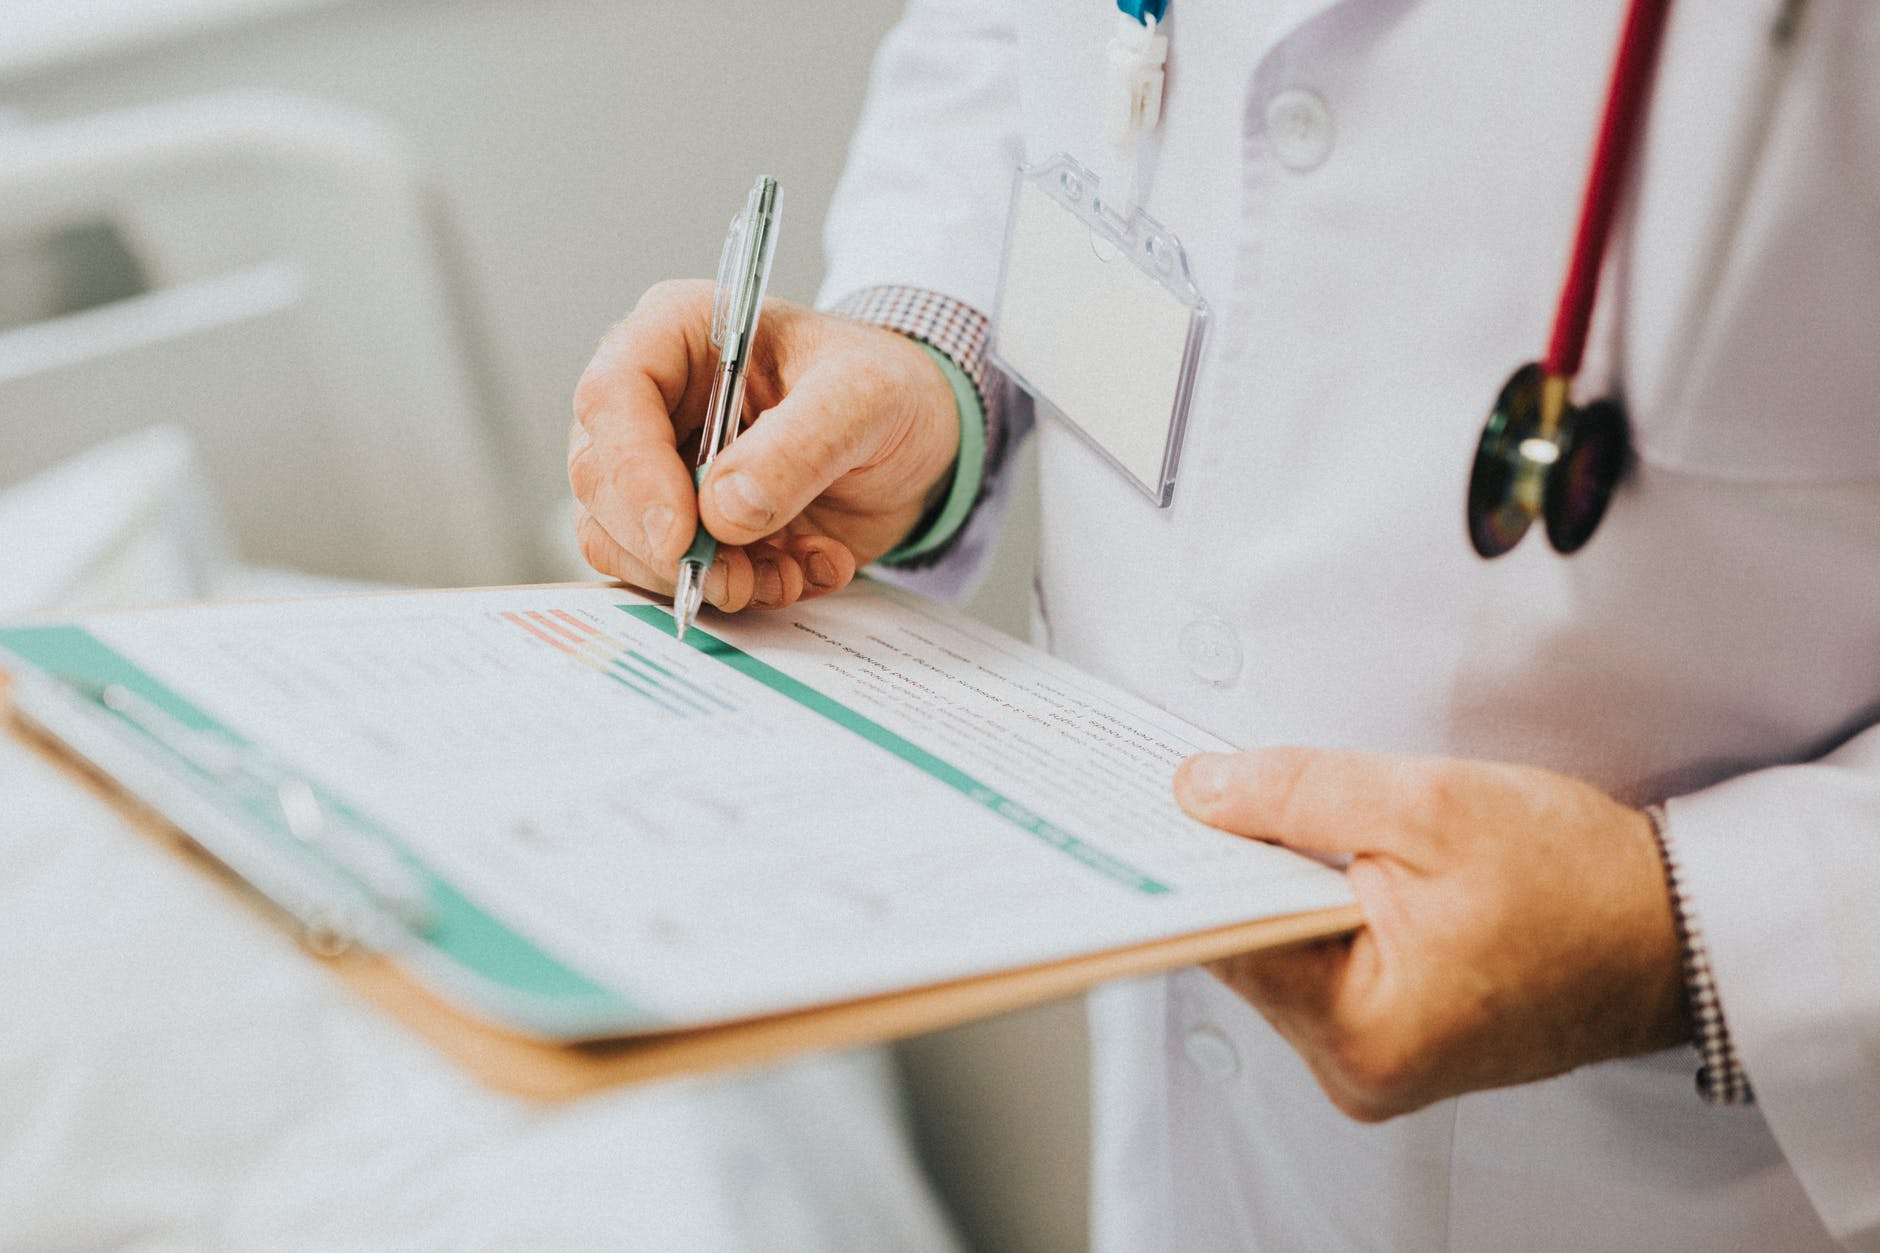 Doctor in a white lab coat standing and filling out a medical form